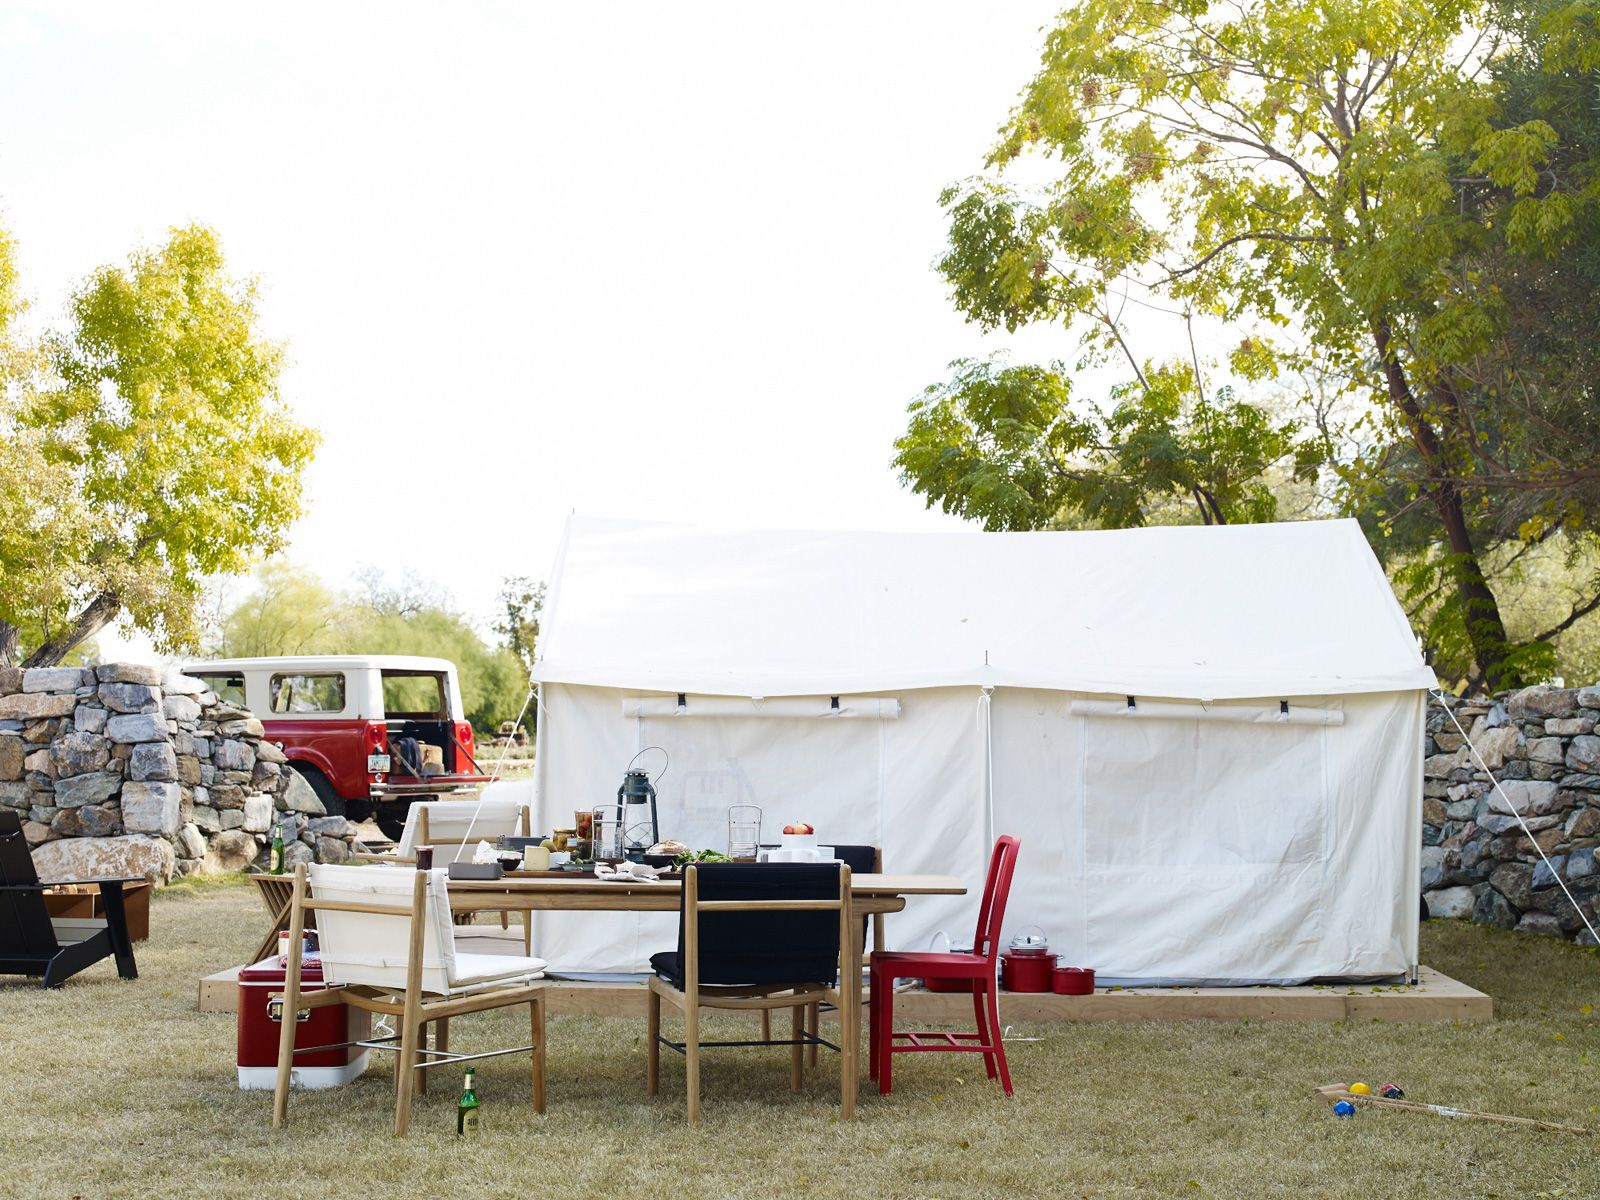 Camping_Overall_01_011.jpg